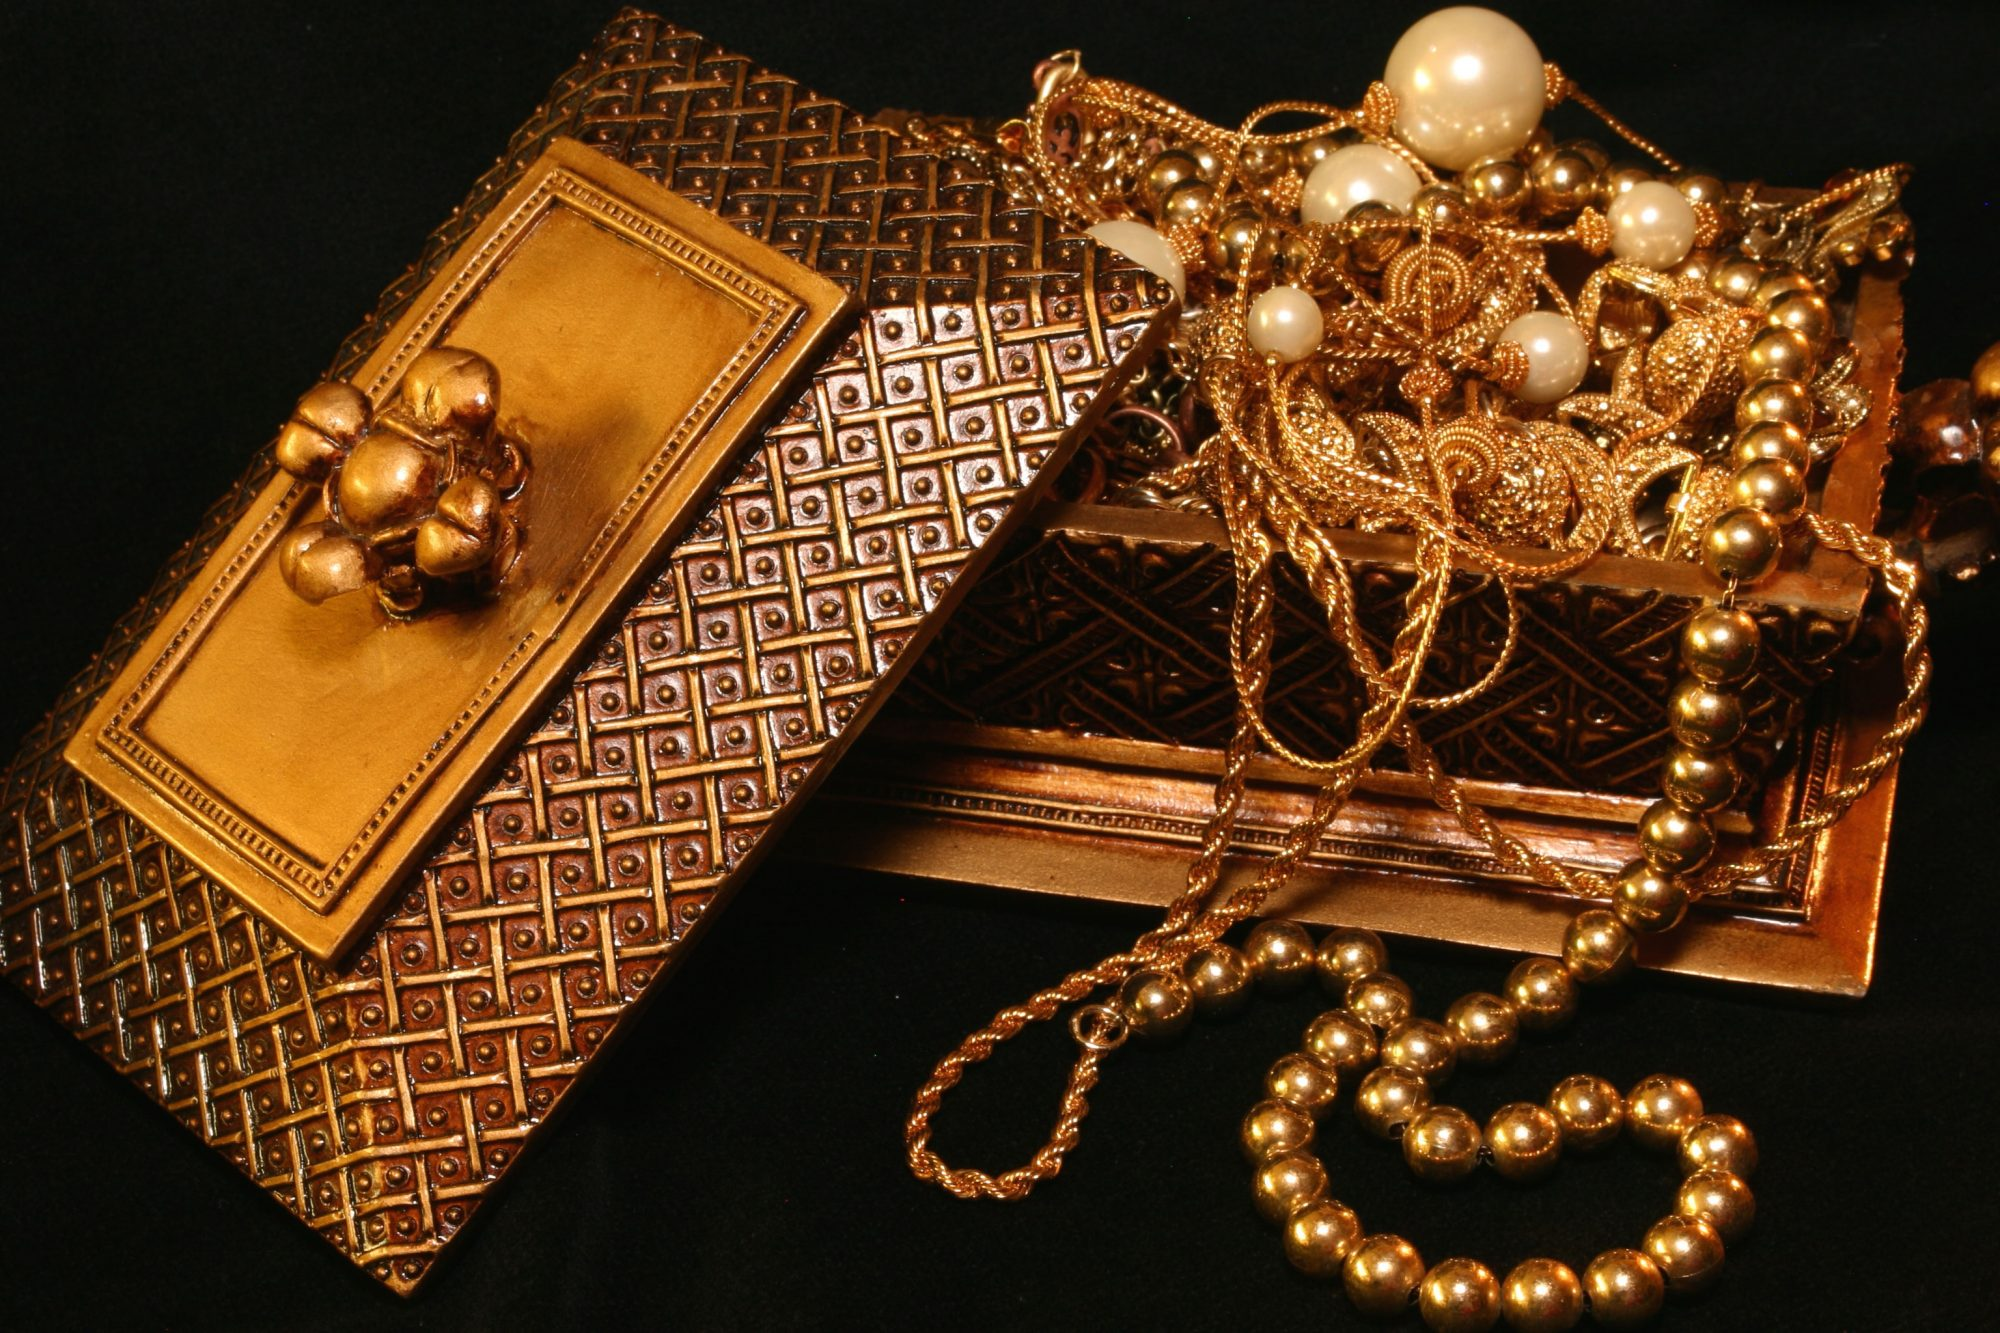 Jewelry Box with Tangled Necklaces